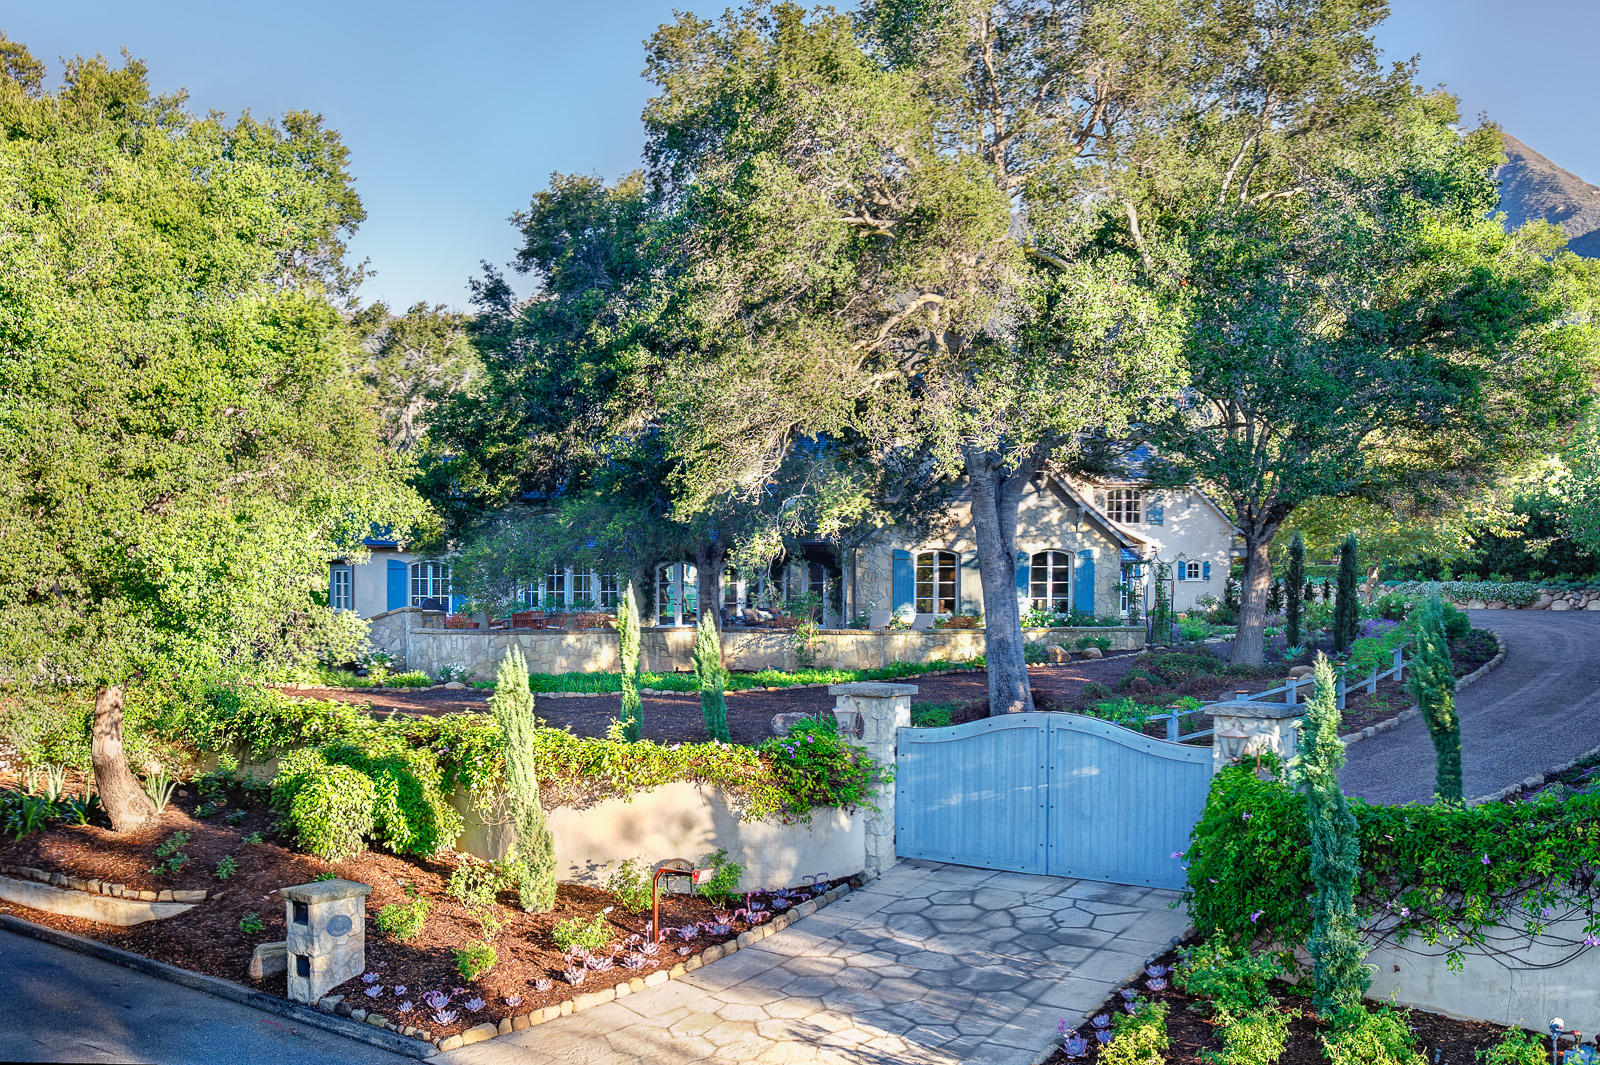 Property photo for 640 Stonehouse Ln Santa Barbara, California 93108 - 17-3033